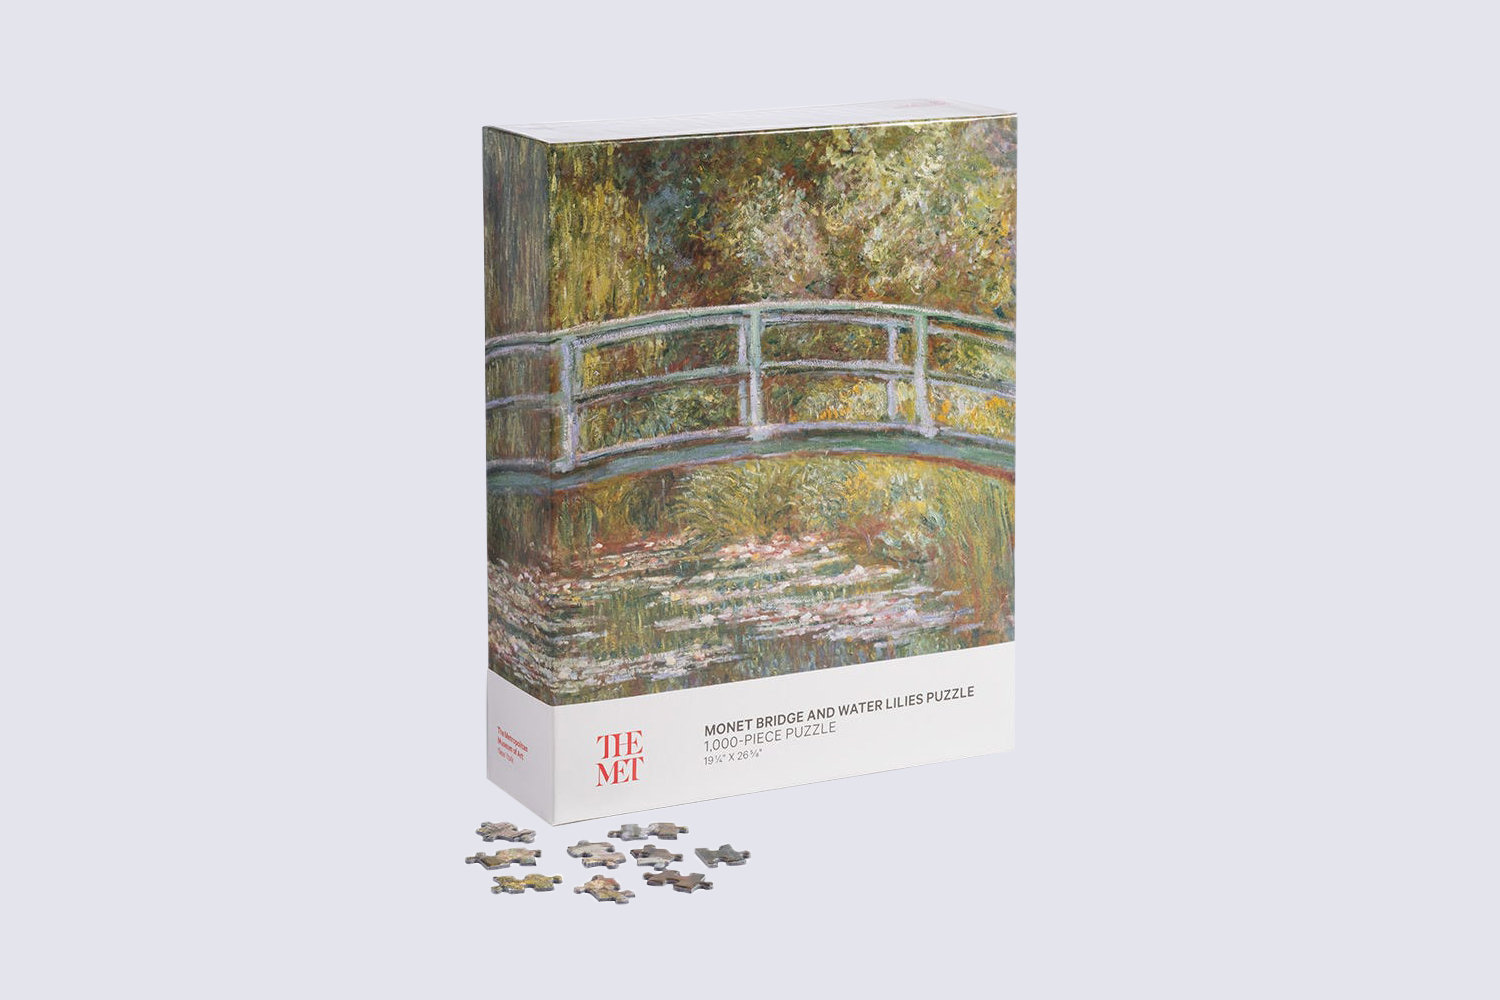 The Met Monet Bridge and Lilies Puzzle